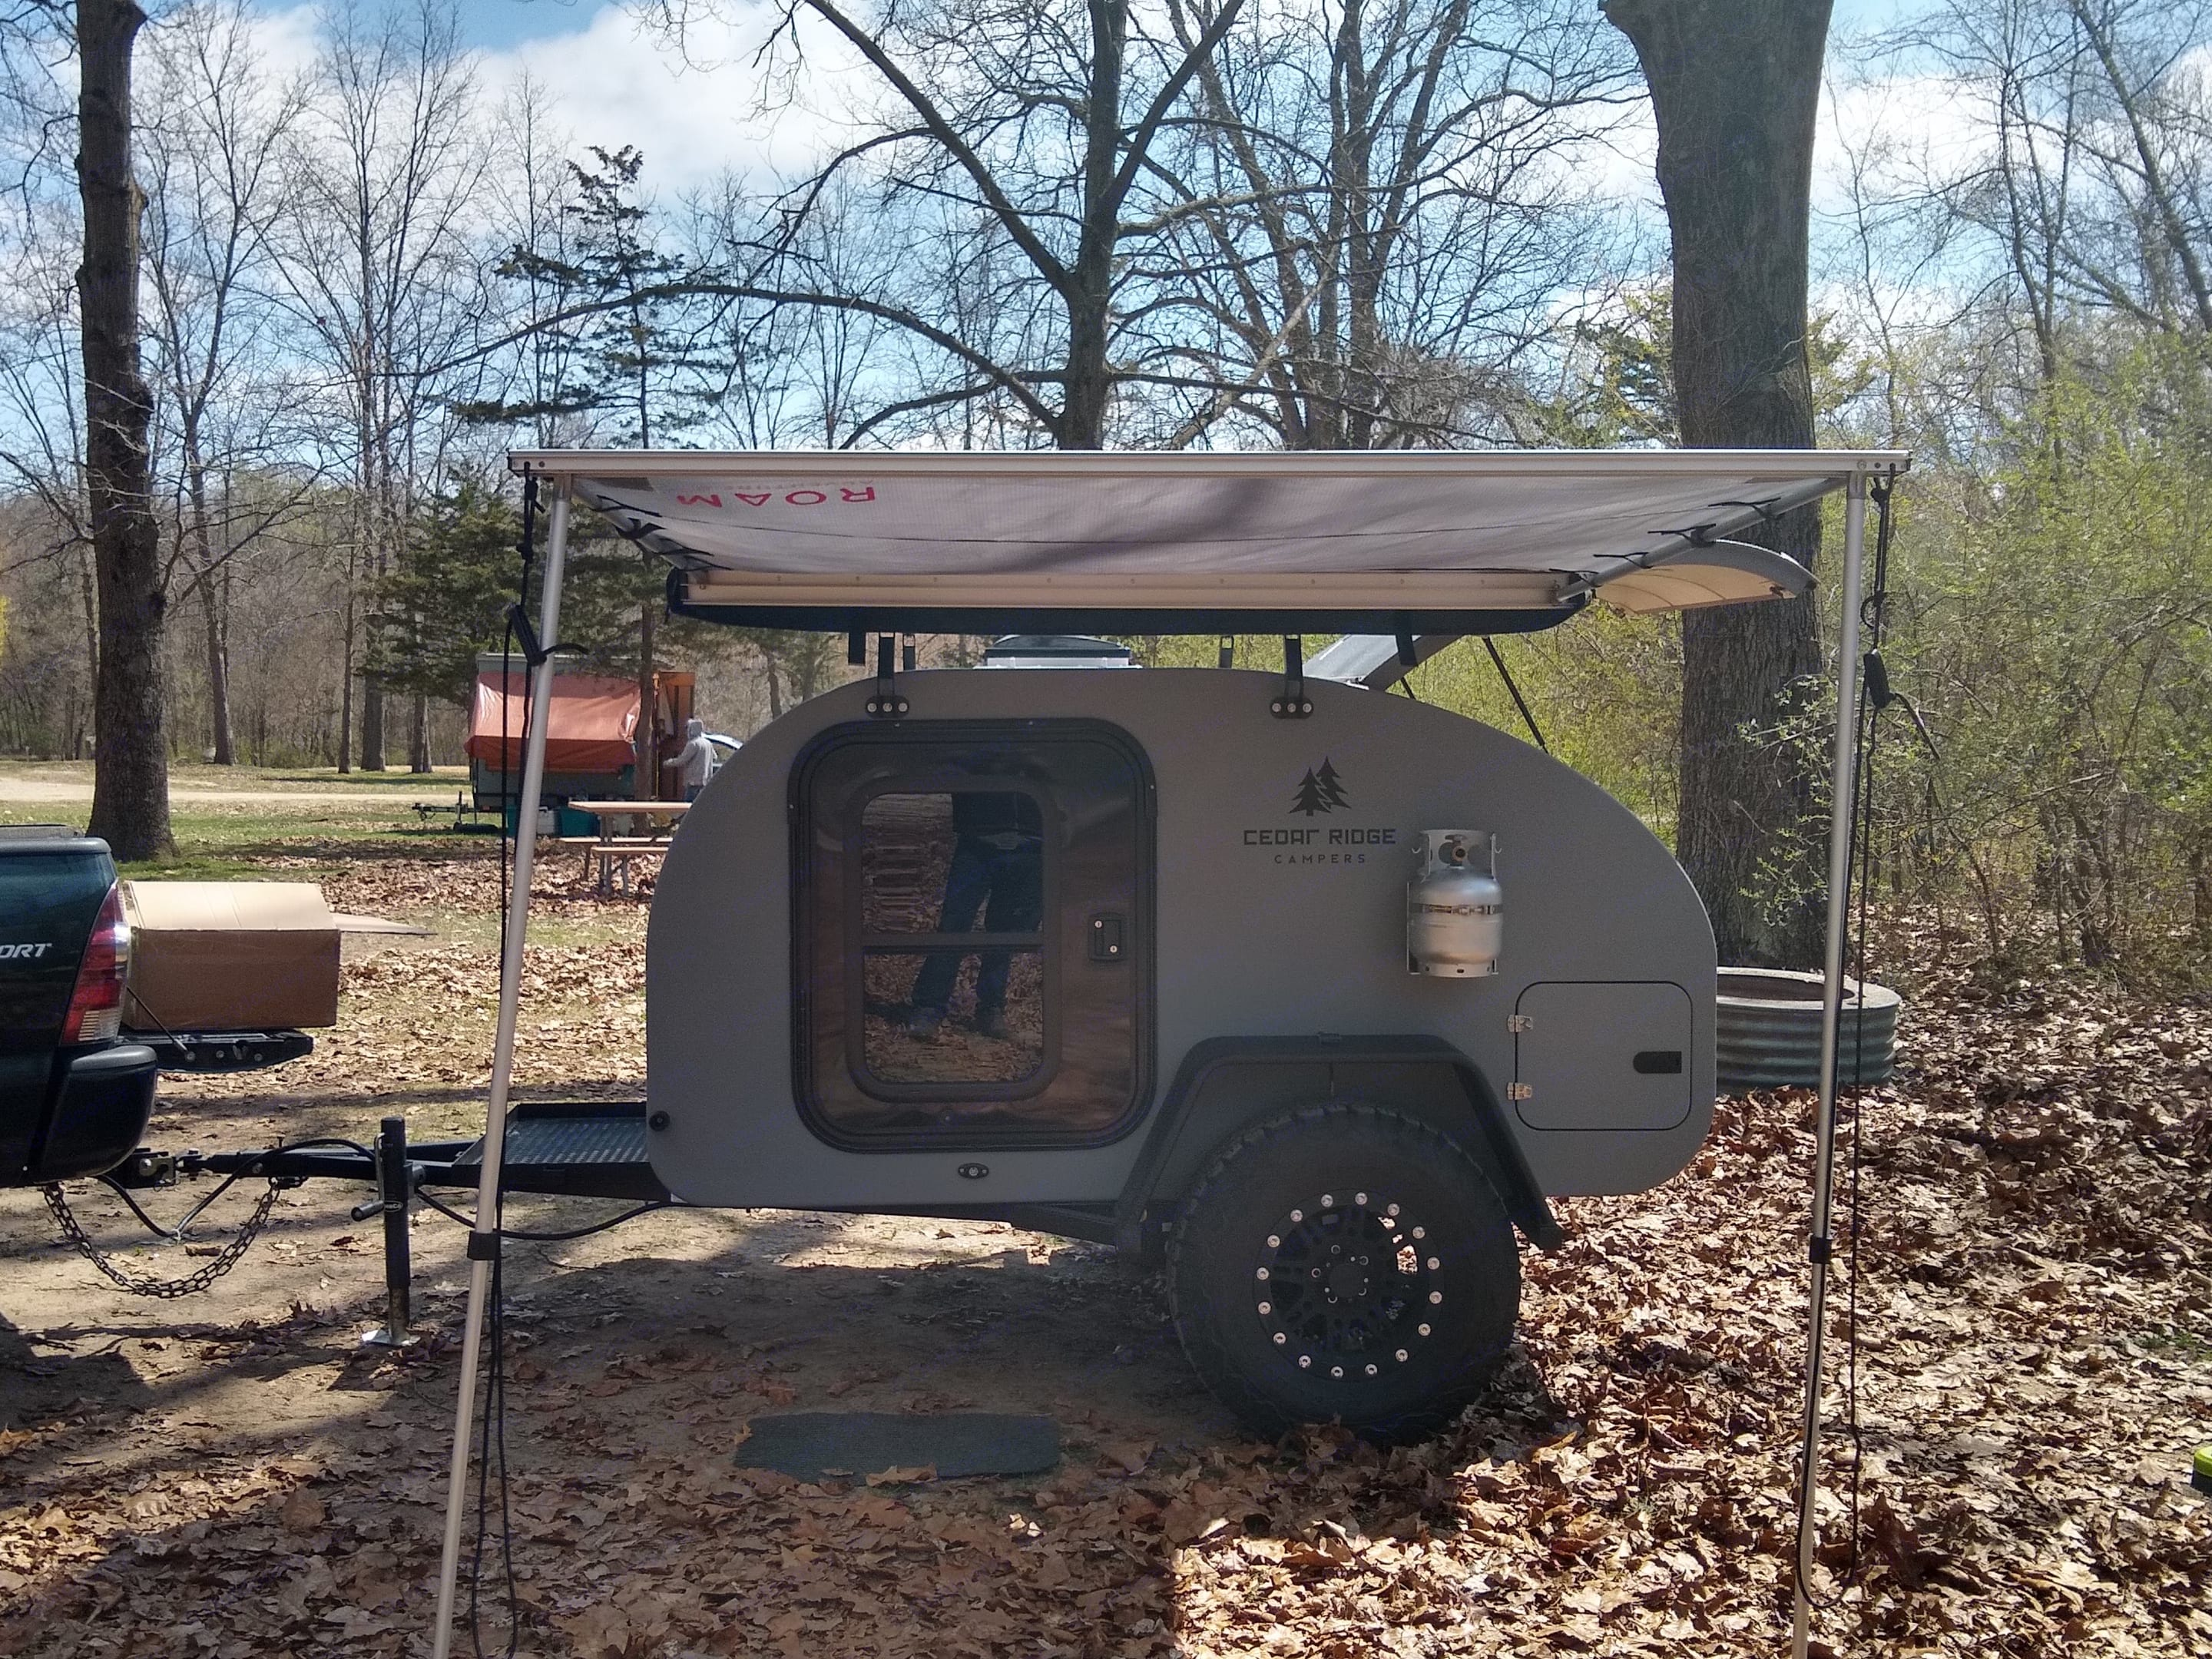 Duel sided pull out canopy to keep yourself dry and cool on your trip. Other Other 2021